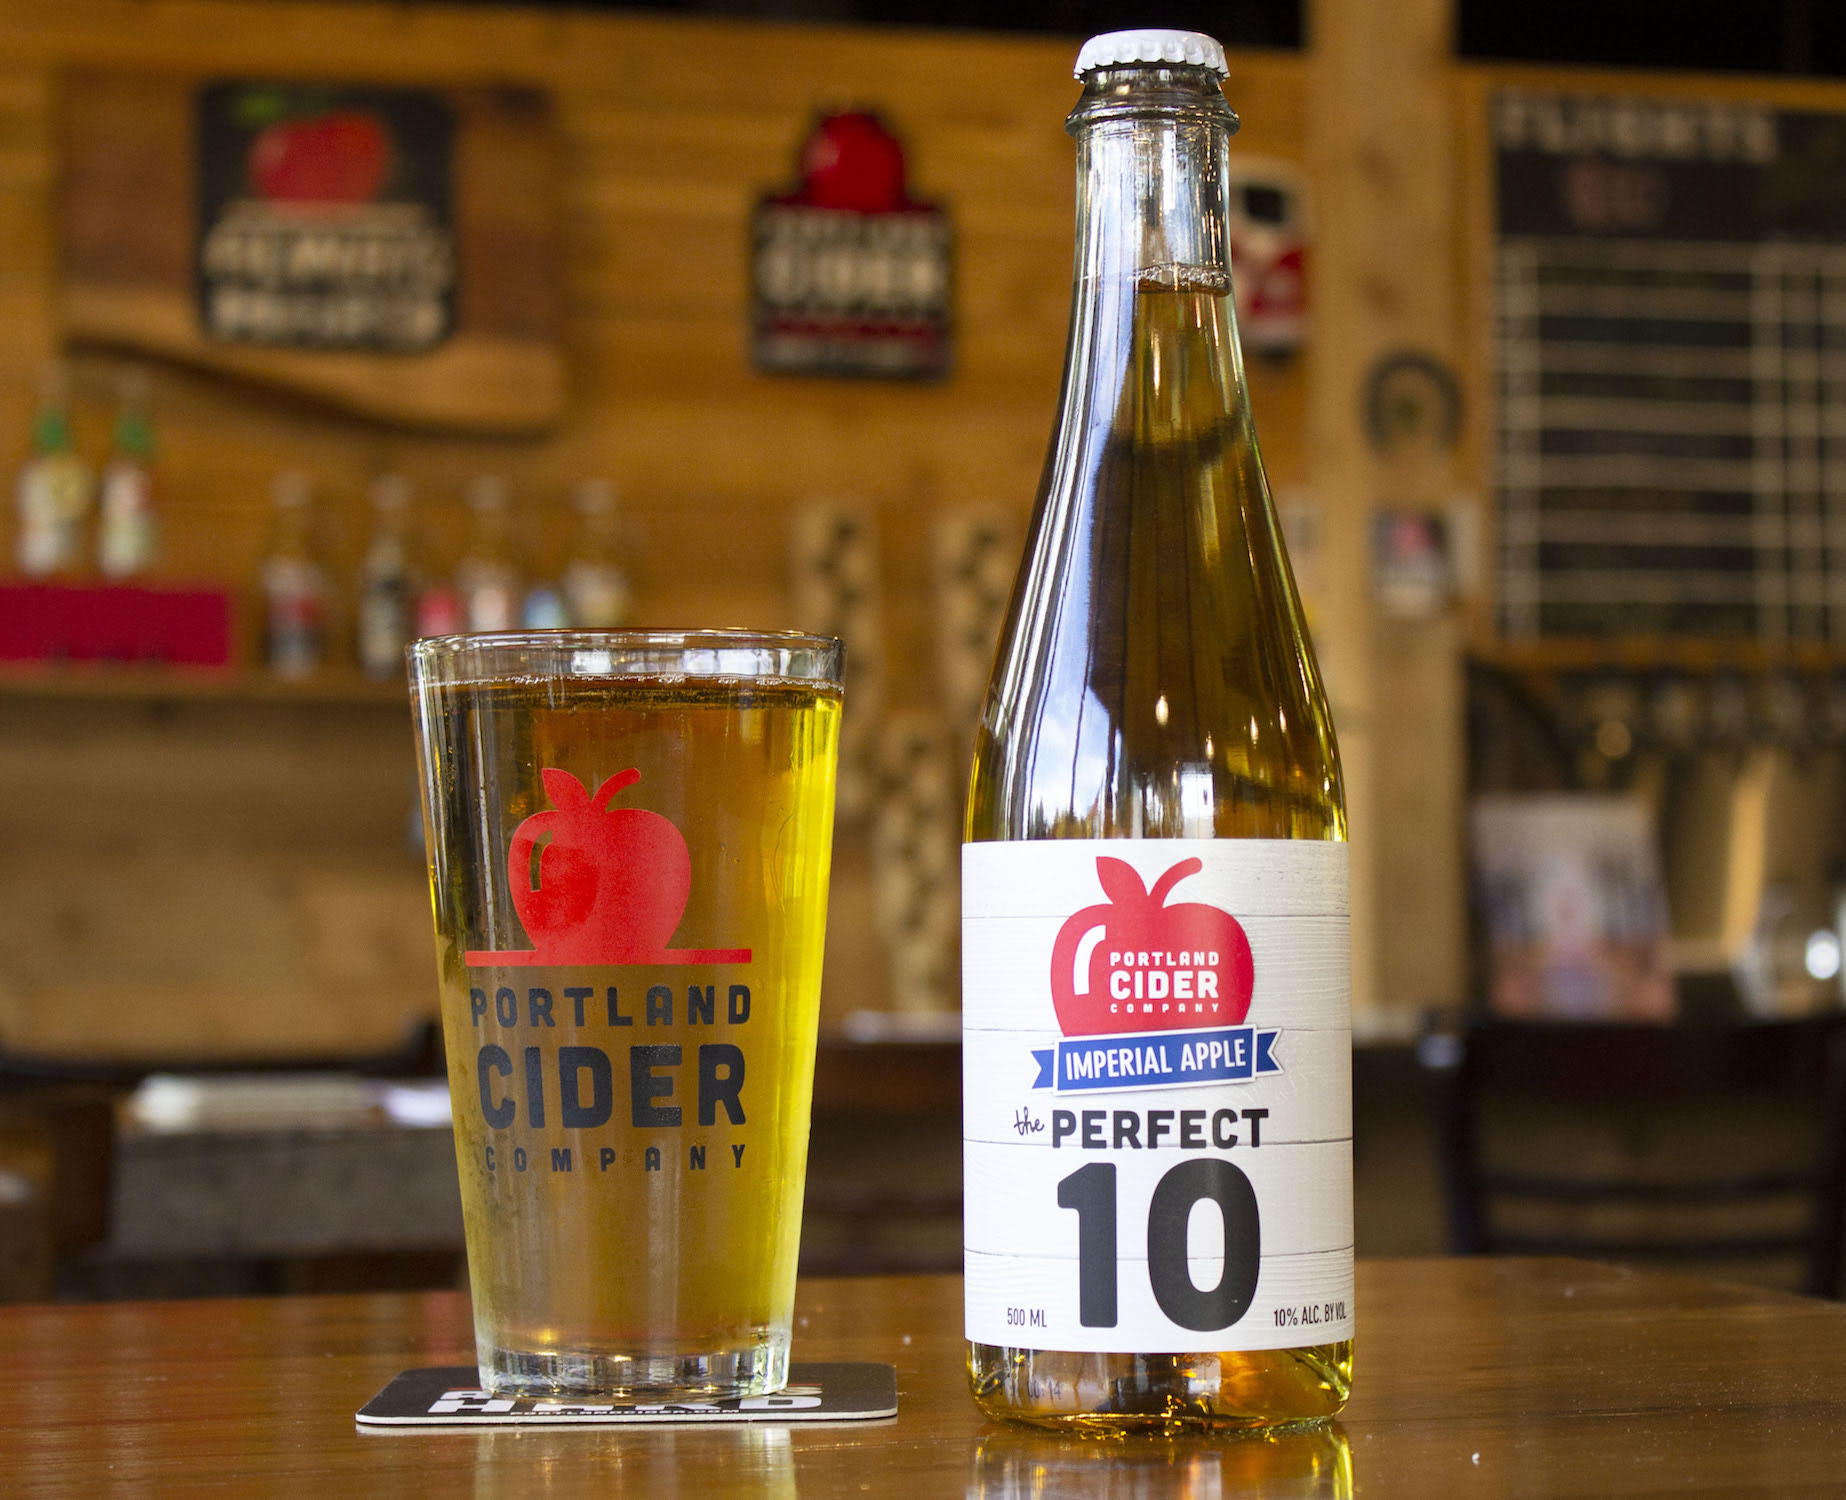 Portland Cider Co. Introduces The Perfect 10 Imperial Cider to its Year-Round Lineup. (image courtesy of Portland Cider Co.)